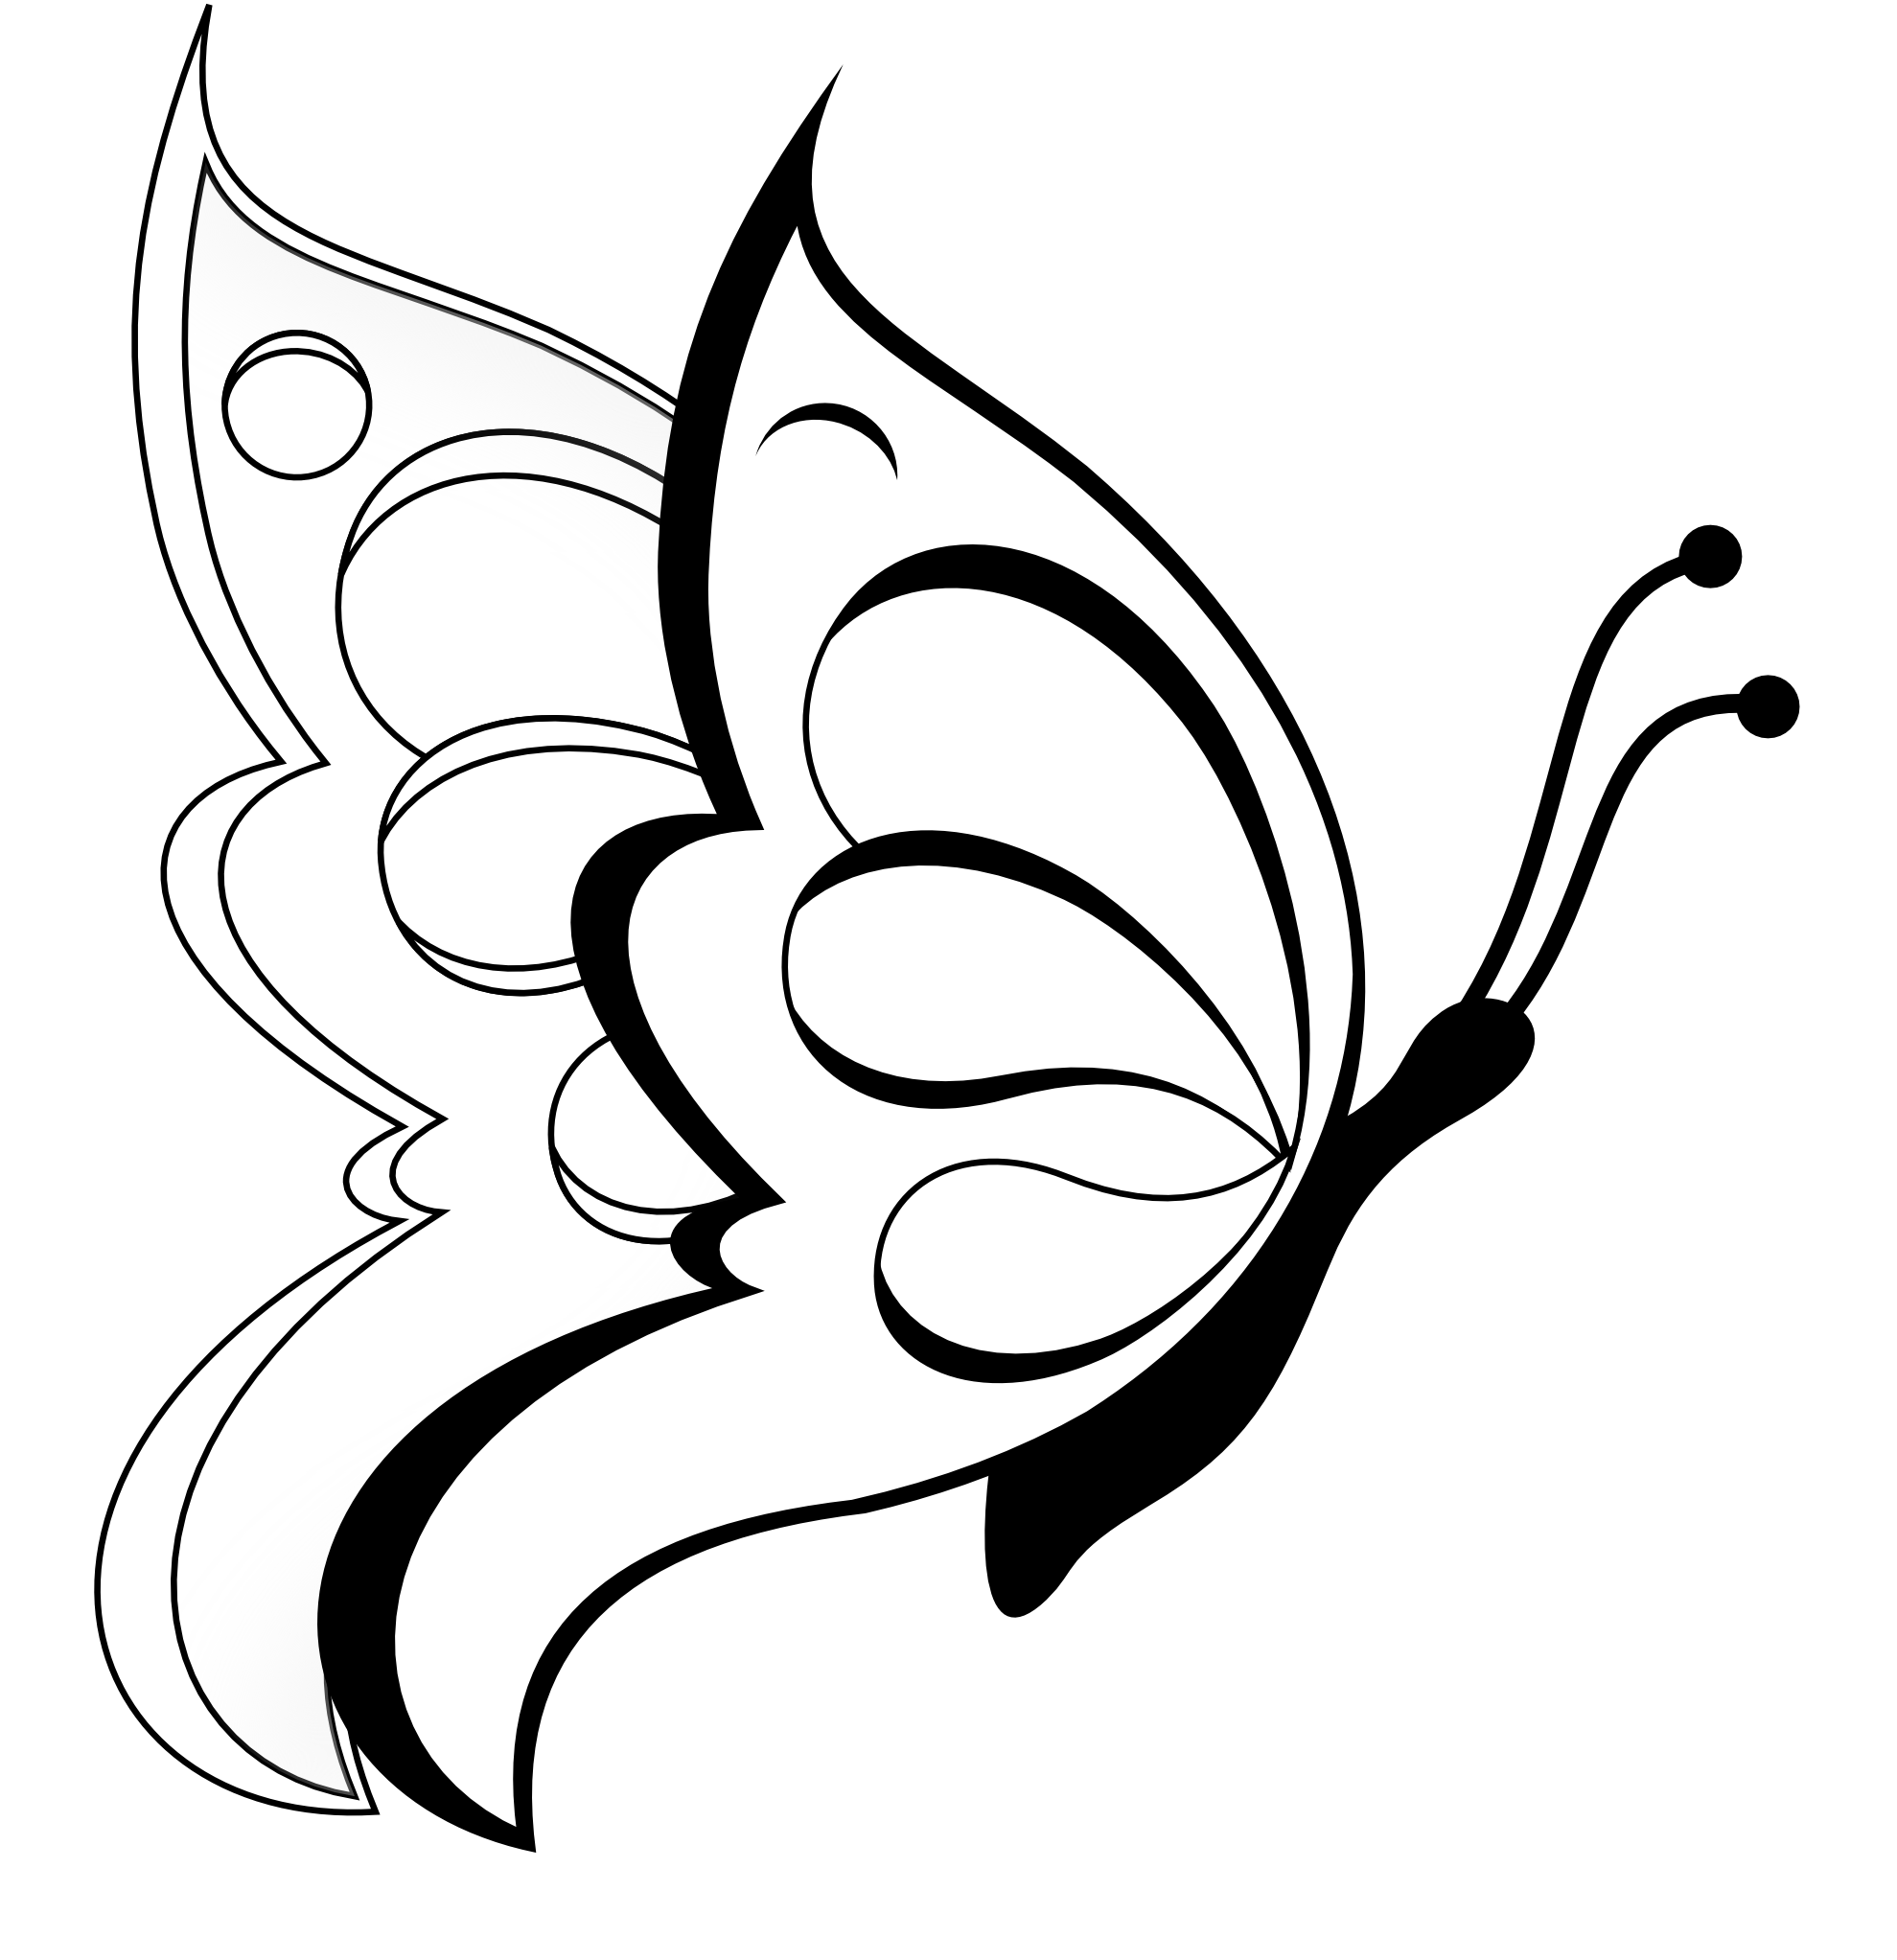 butterfly clipart Butterfly 19 Black White Line Art Coloring.